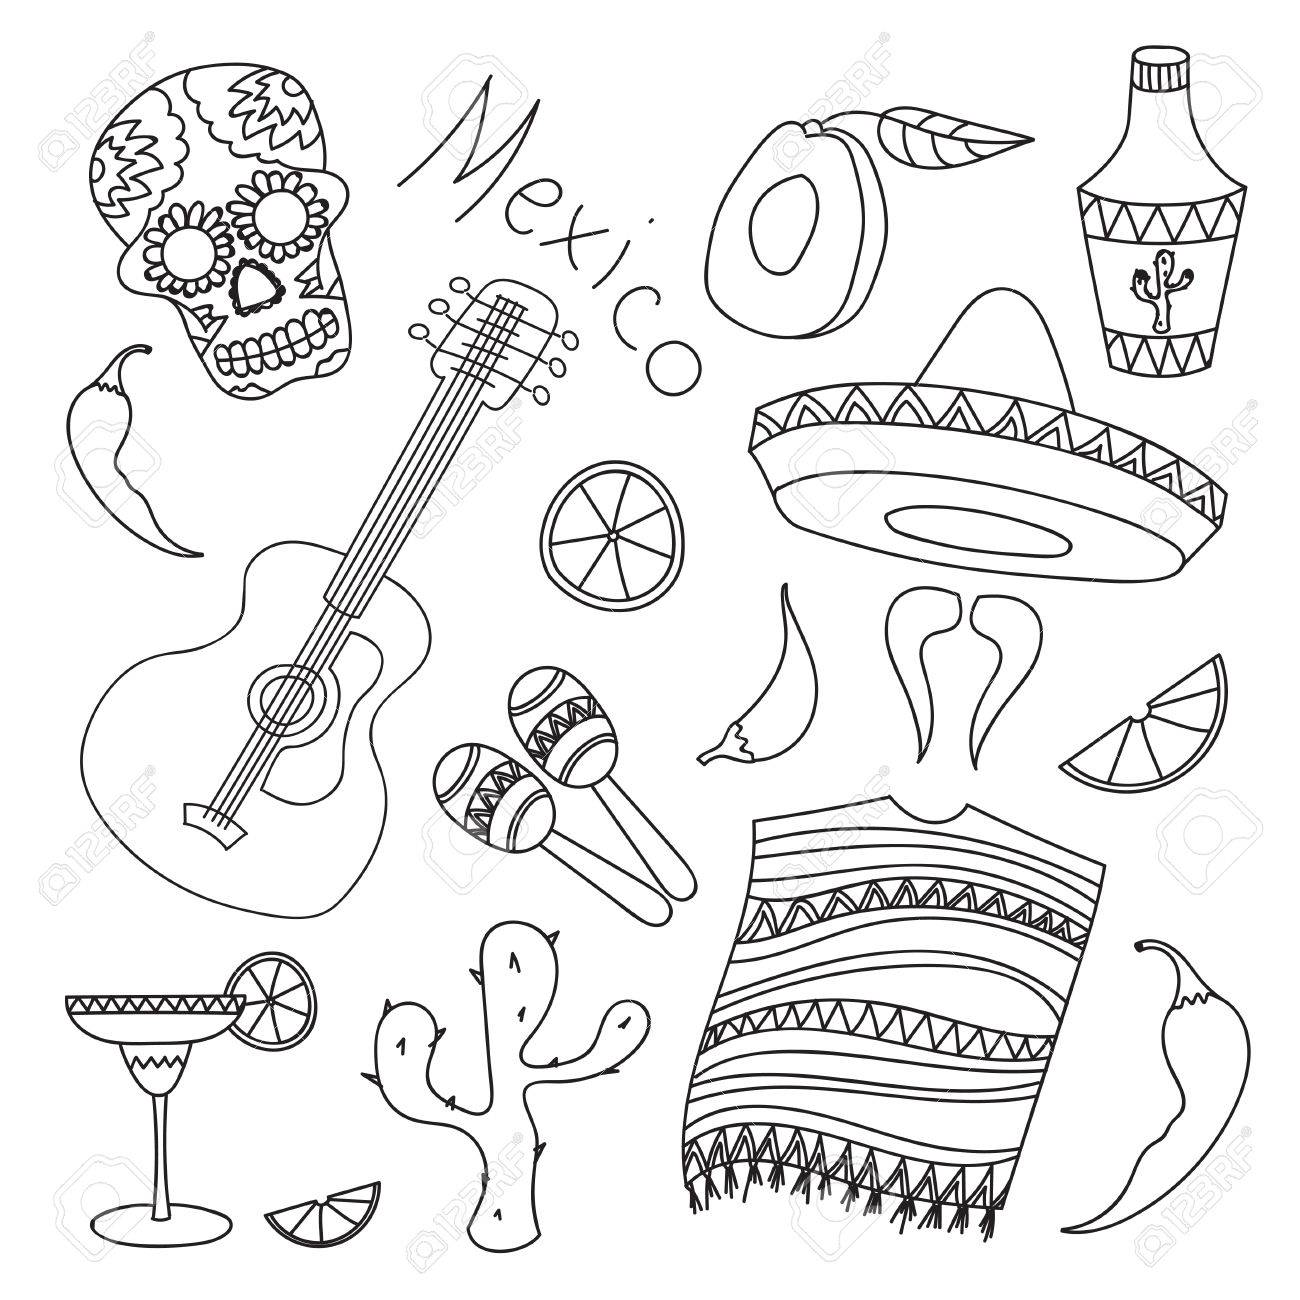 1300x1300 Doodle Vektor Mexico With Hand Drawn Mexican Elements. Guitar